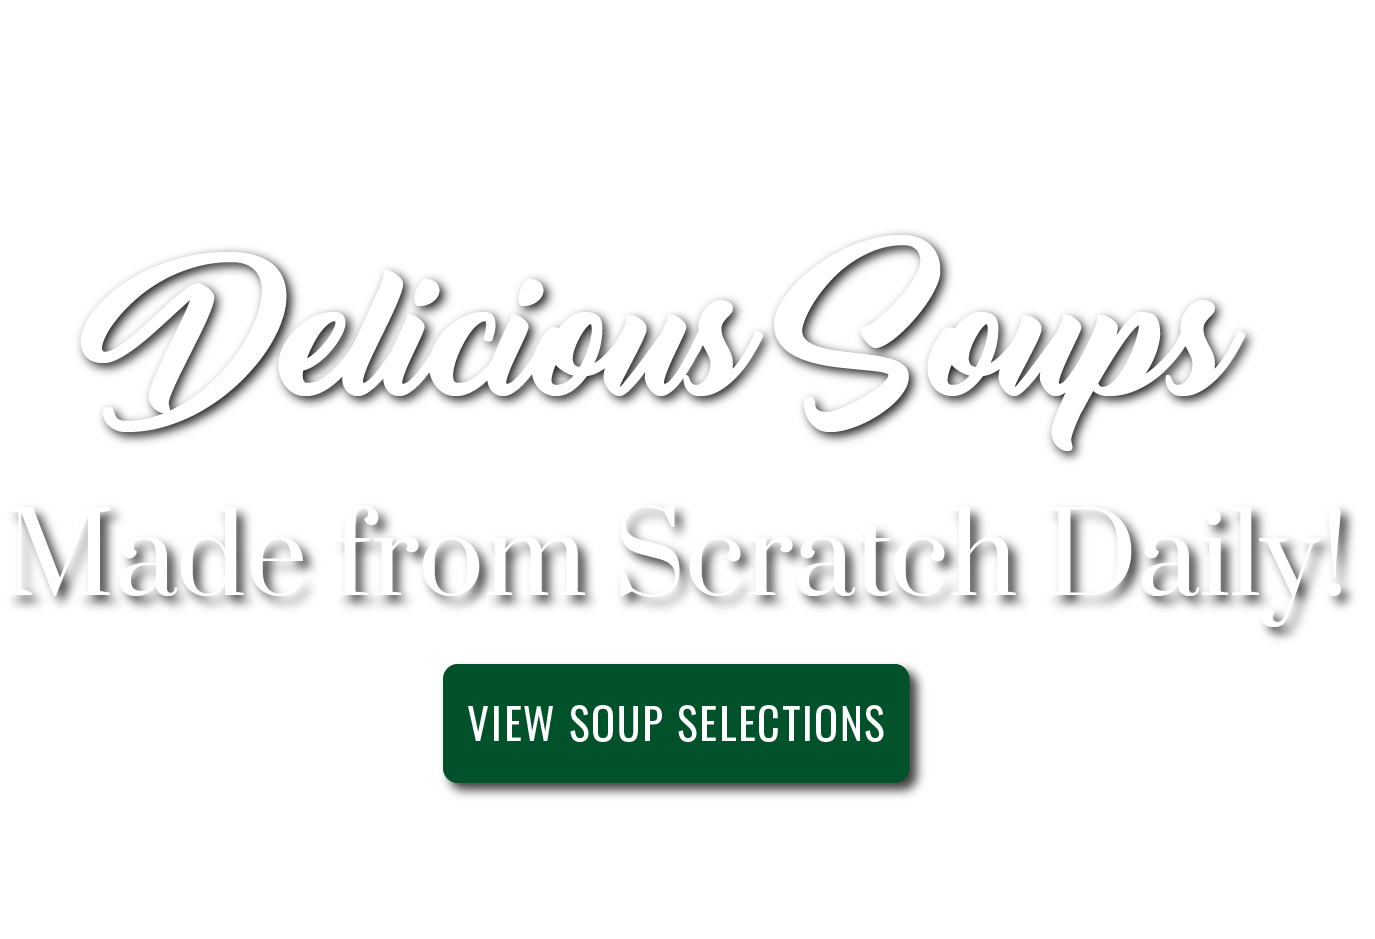 Delicious Soups made from scratch daily! View soup selections